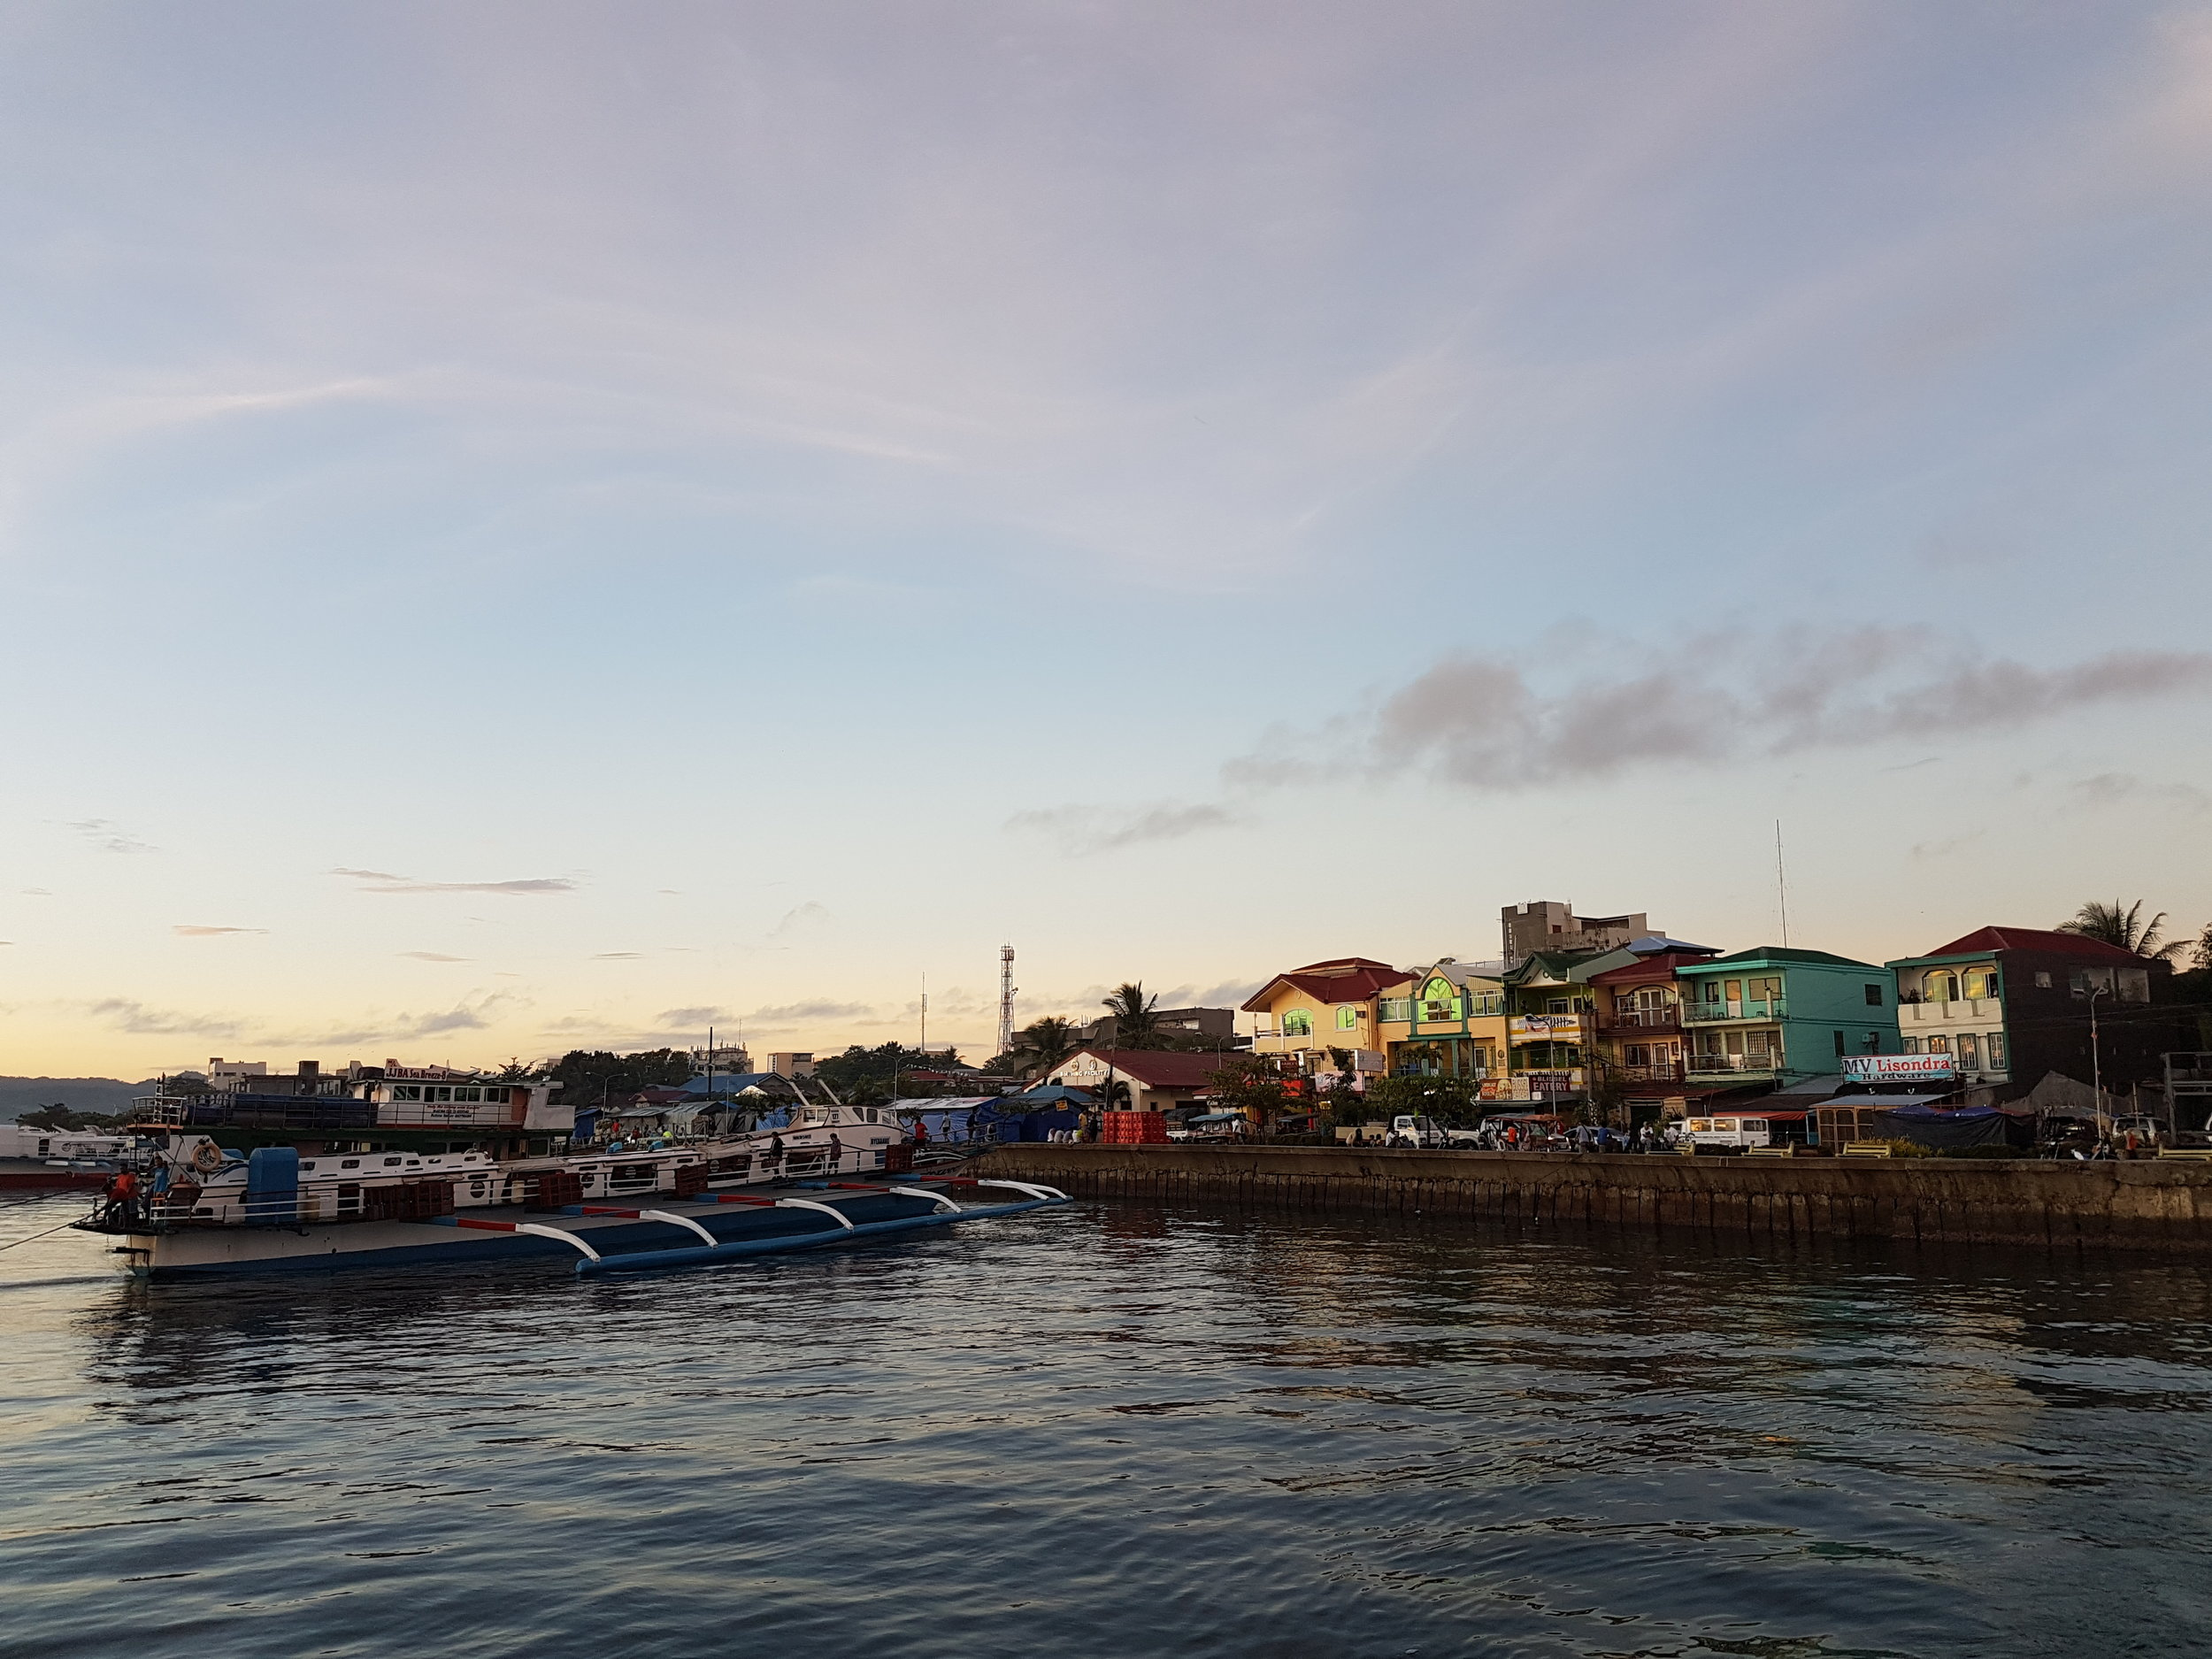 A view of the bustling Surigao City's Boulevard from the sea at quarter to 6:00am in the morning.